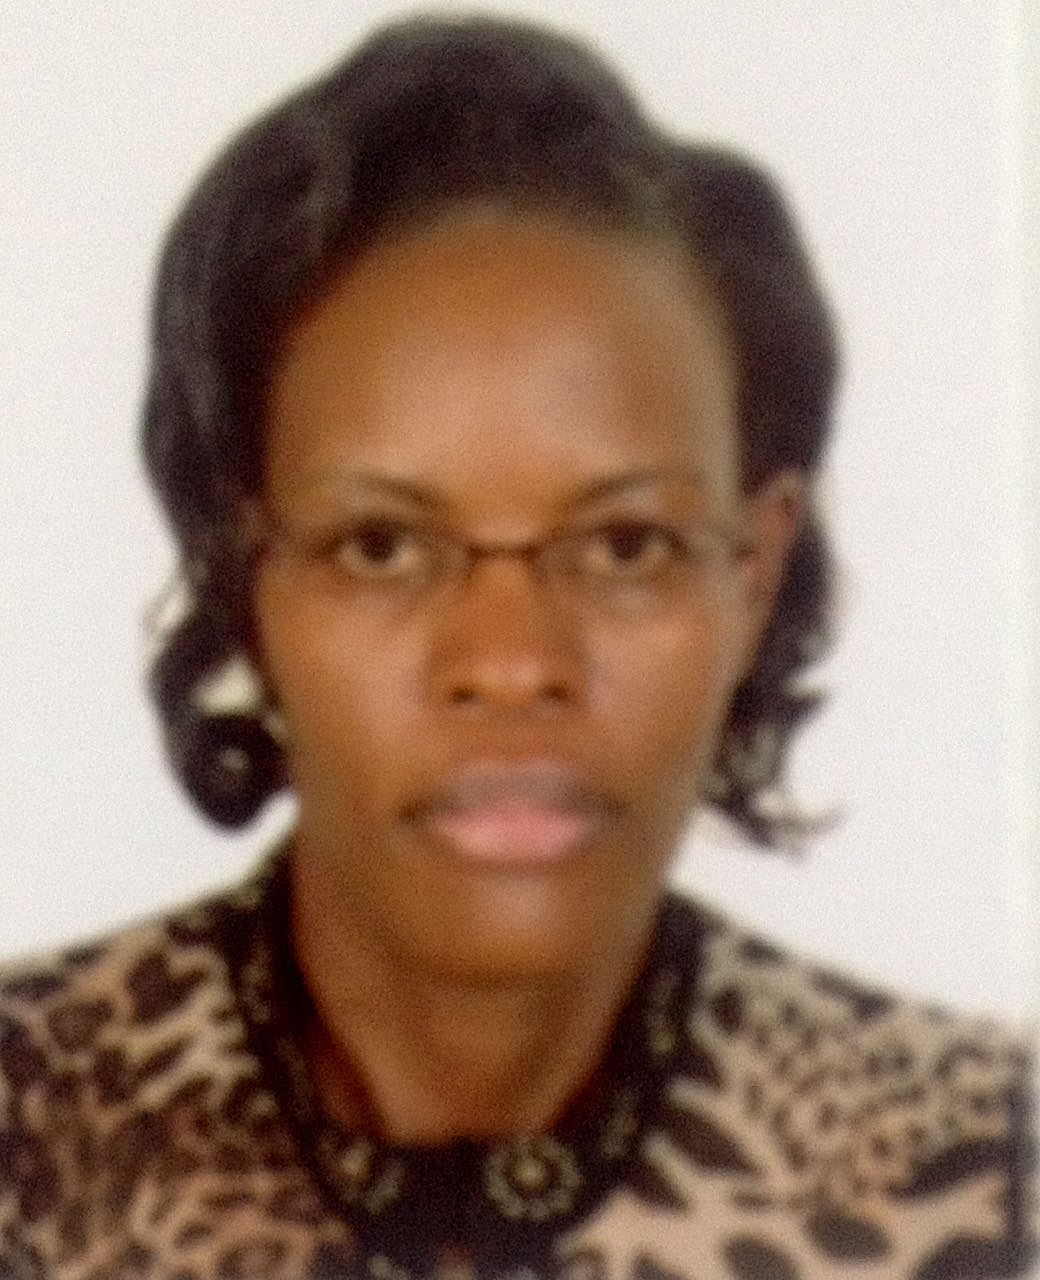 JACKLINE NYAKATO   Jackline is an accountant with Petrocity Enterprises Uganda Limited since 2004. She has wide experience in finance and audit.She is a good team member and a flexible leader with excellent communication, governance and administration skills. Prior to joining the Oil Industry Jackline worked with Kassim Lakha Abdulla and Company (Currently PKF) a reputable audit firm.  Jackline is a fellow of the Association of Chartered Certified Accountants (FCCA) and a member of the Institute of the Certified Public Accountants of Uganda. She holds a Bachelor of Science in Applied Accounting degree from Oxford Brookes University. Jackline has served on the board as a Treasurer Y-Save Multi-Purpose one of the biggest saccos in the country.